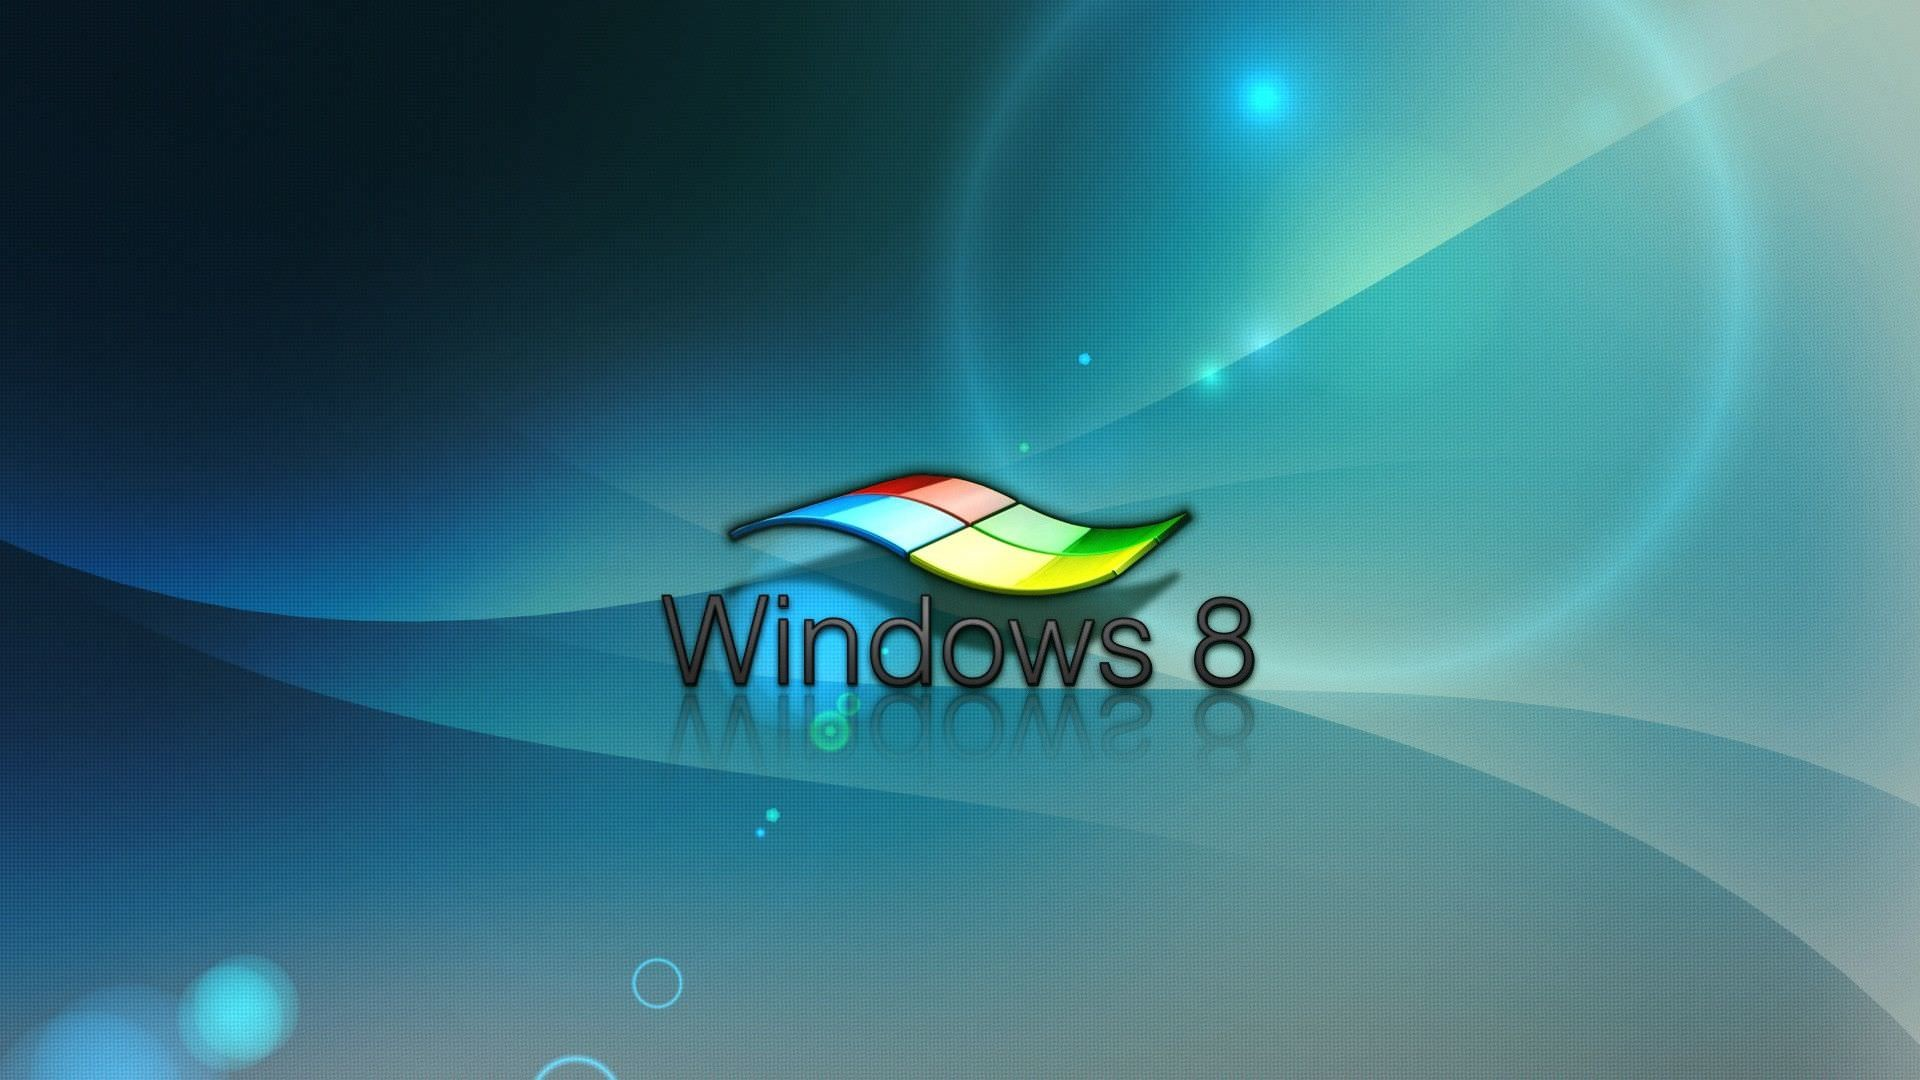 30+ 3D Windows 8 Wallpapers, Images, Backgrounds, Pictures .